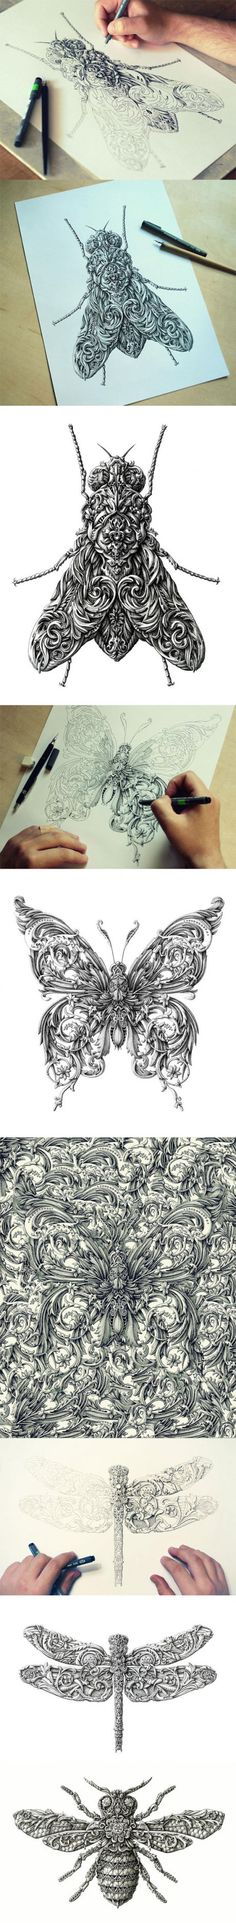 Awesome renaissance-style insect drawings